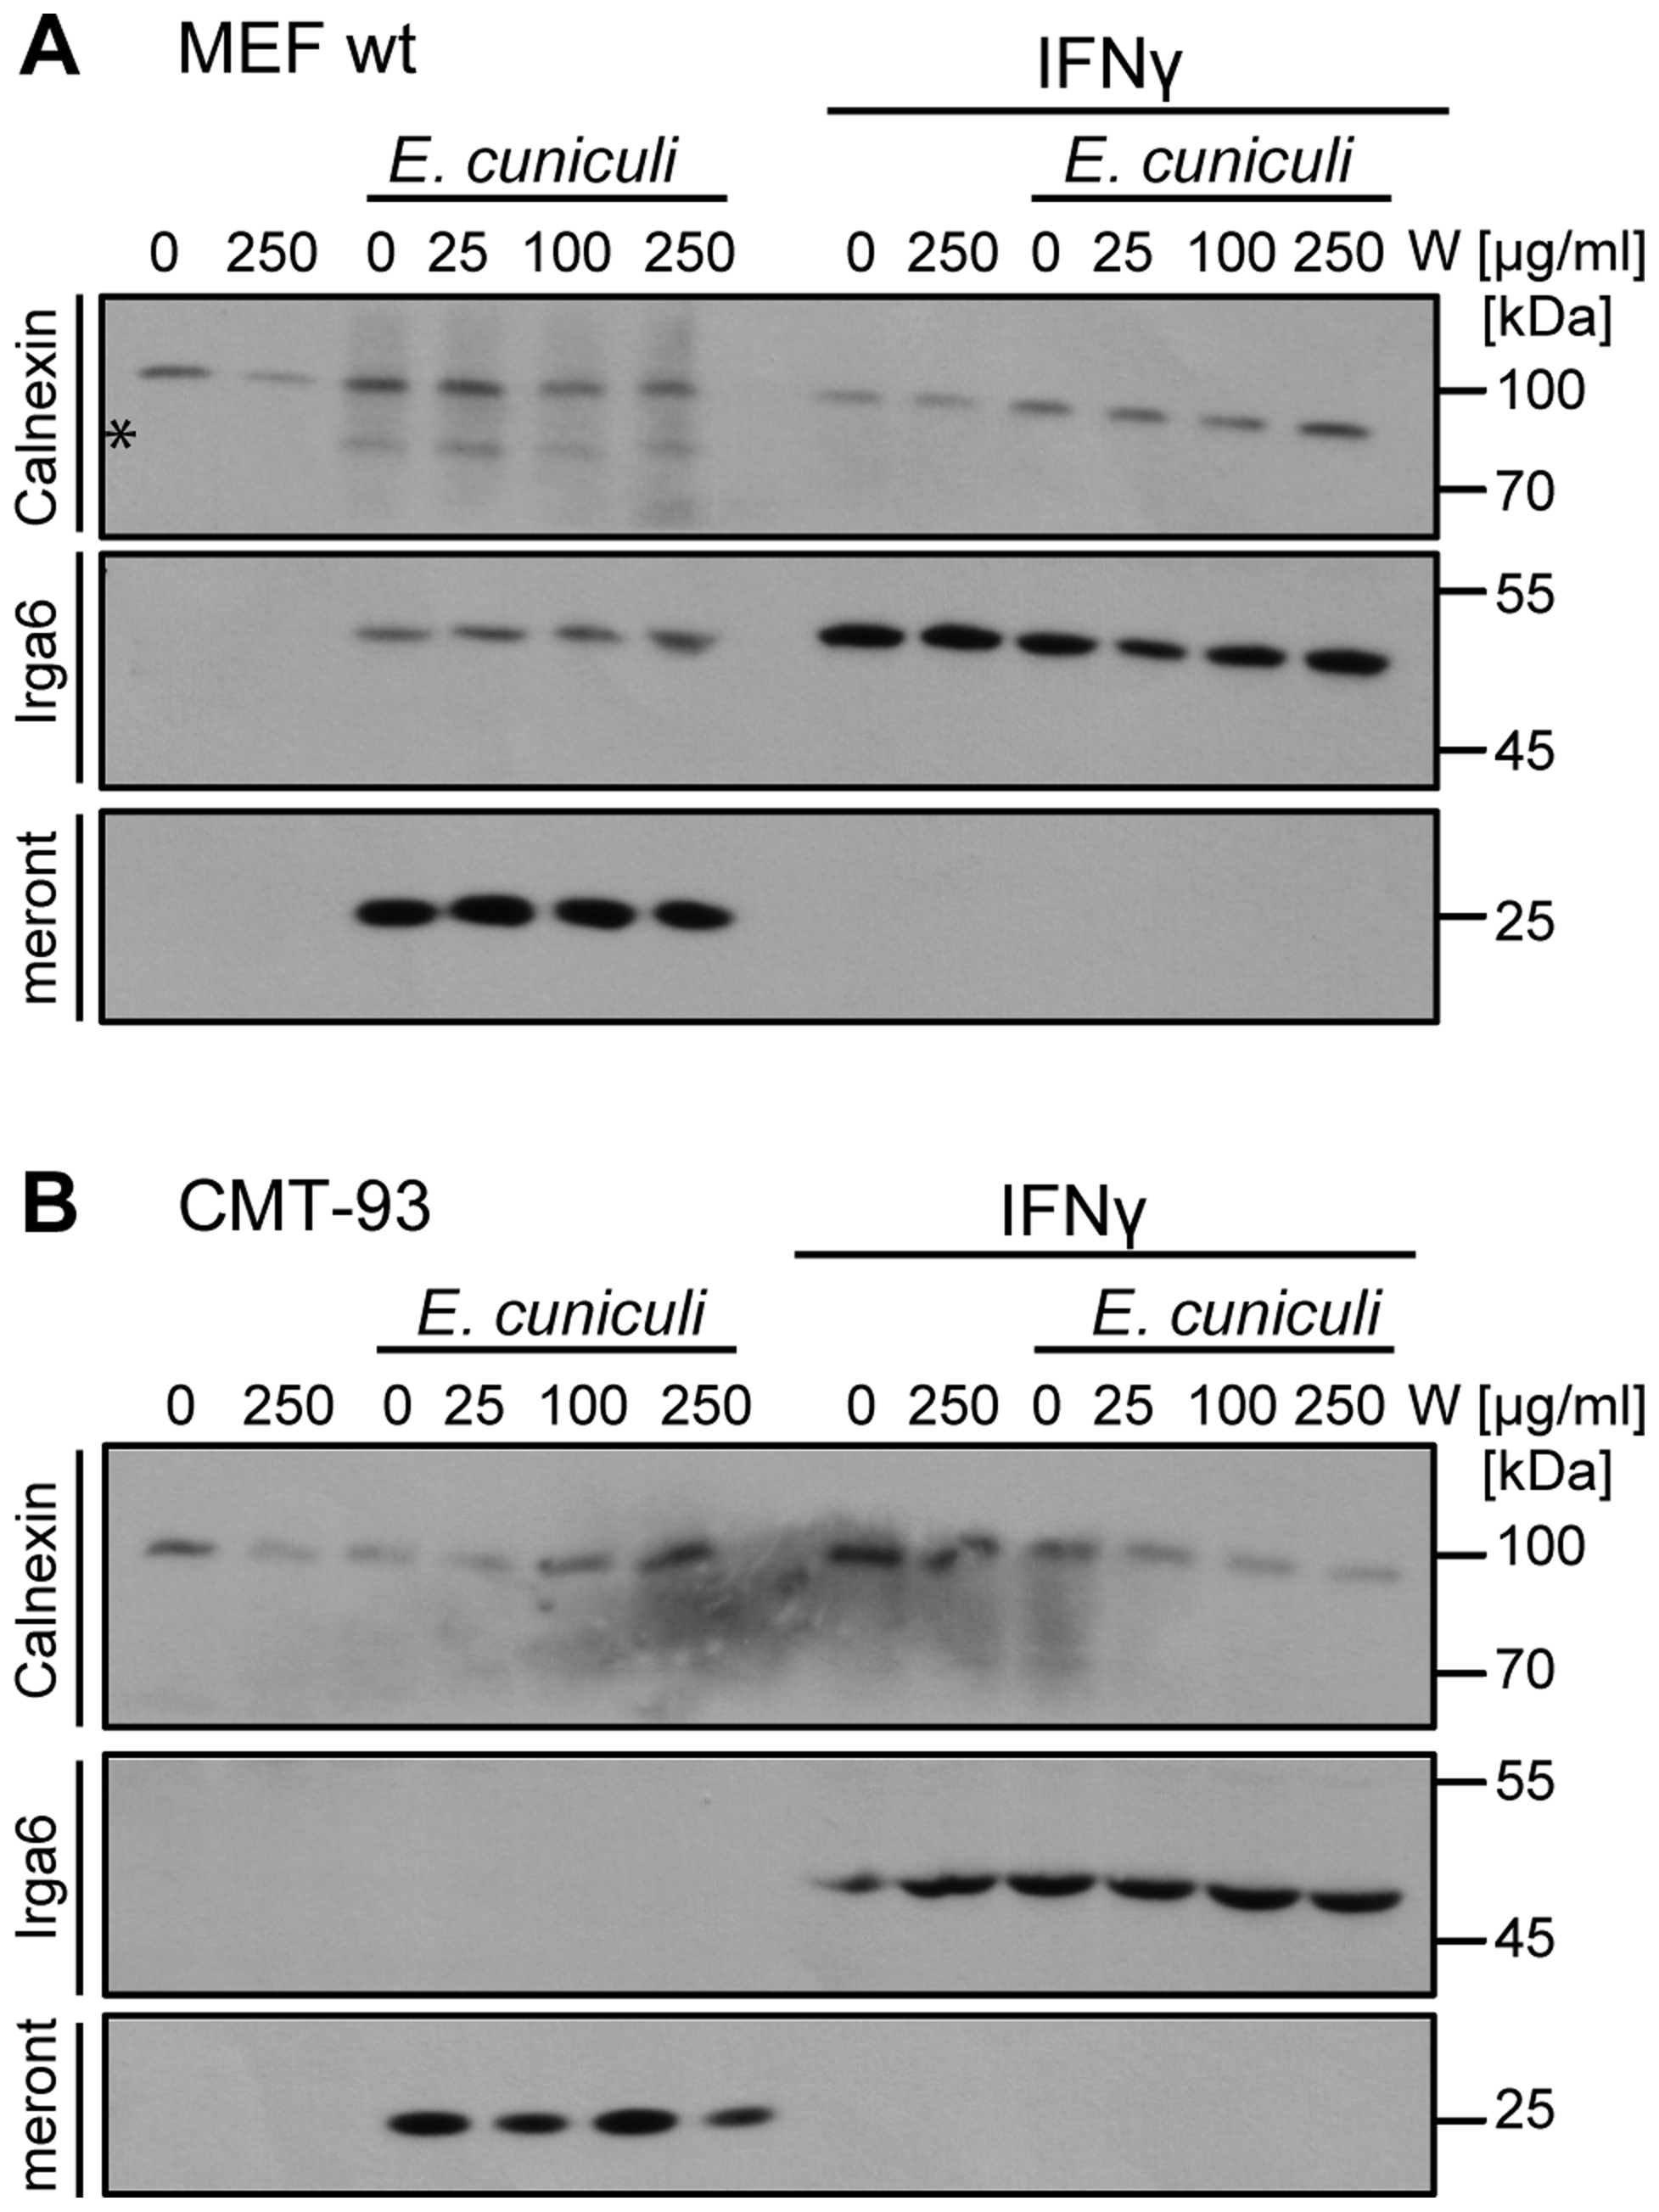 Tryptophan supplementation cannot reverse the IFNγ-mediated <i>E. cuniculi</i> restriction.